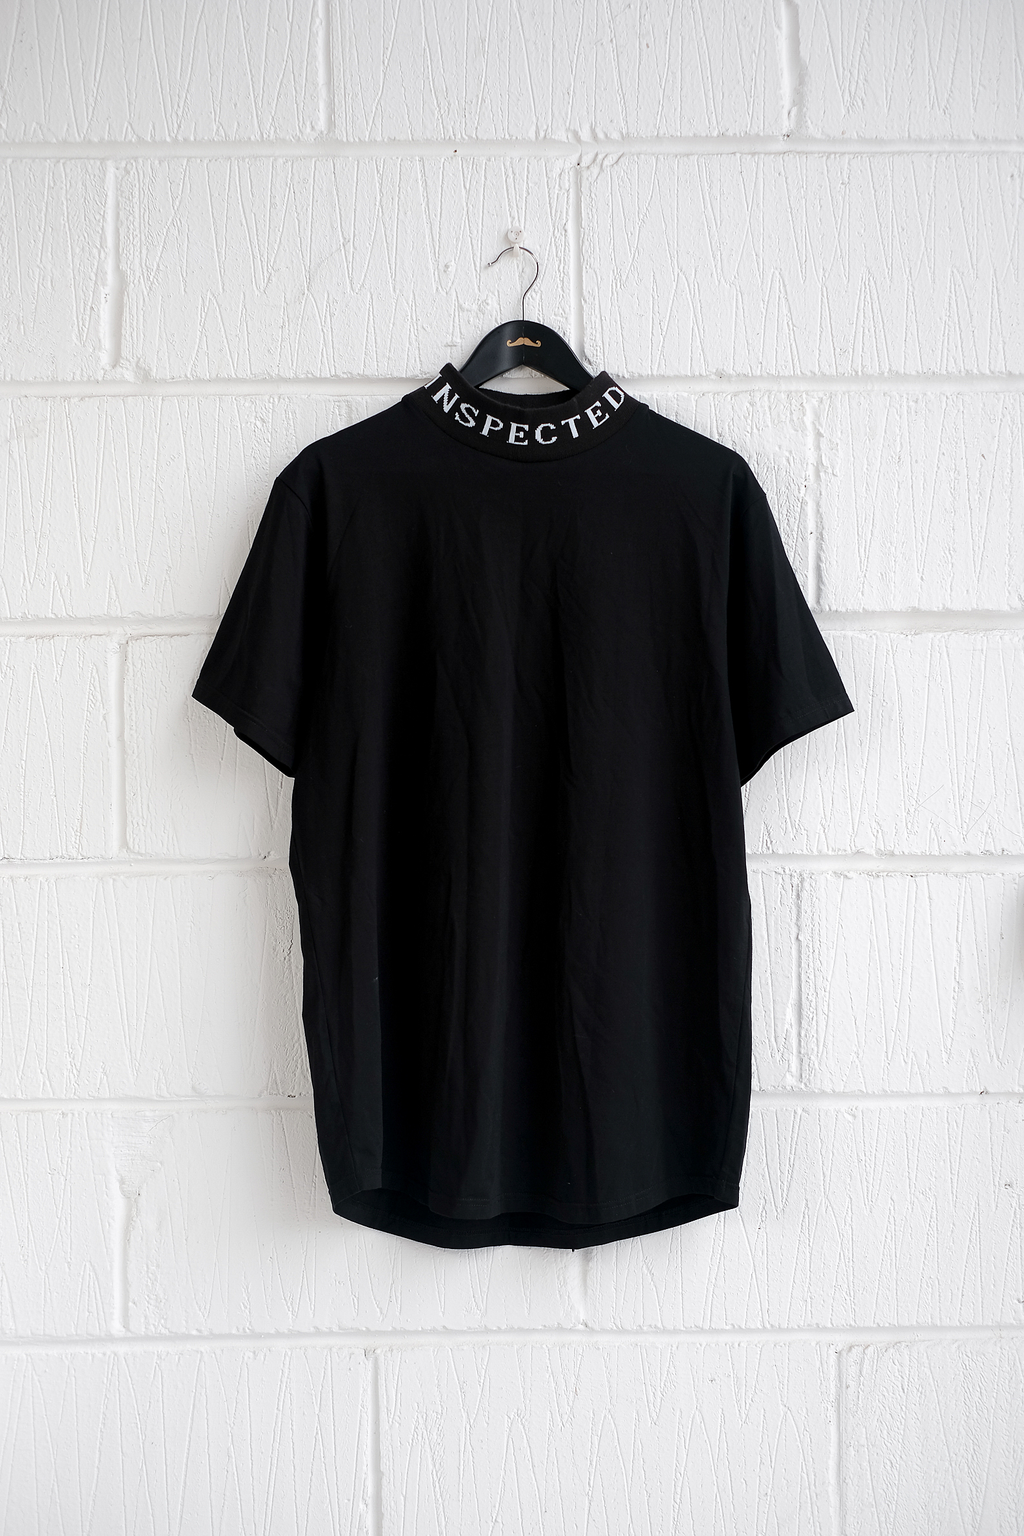 SAMPLE T-SHIRT — MOCK NECK BLACK